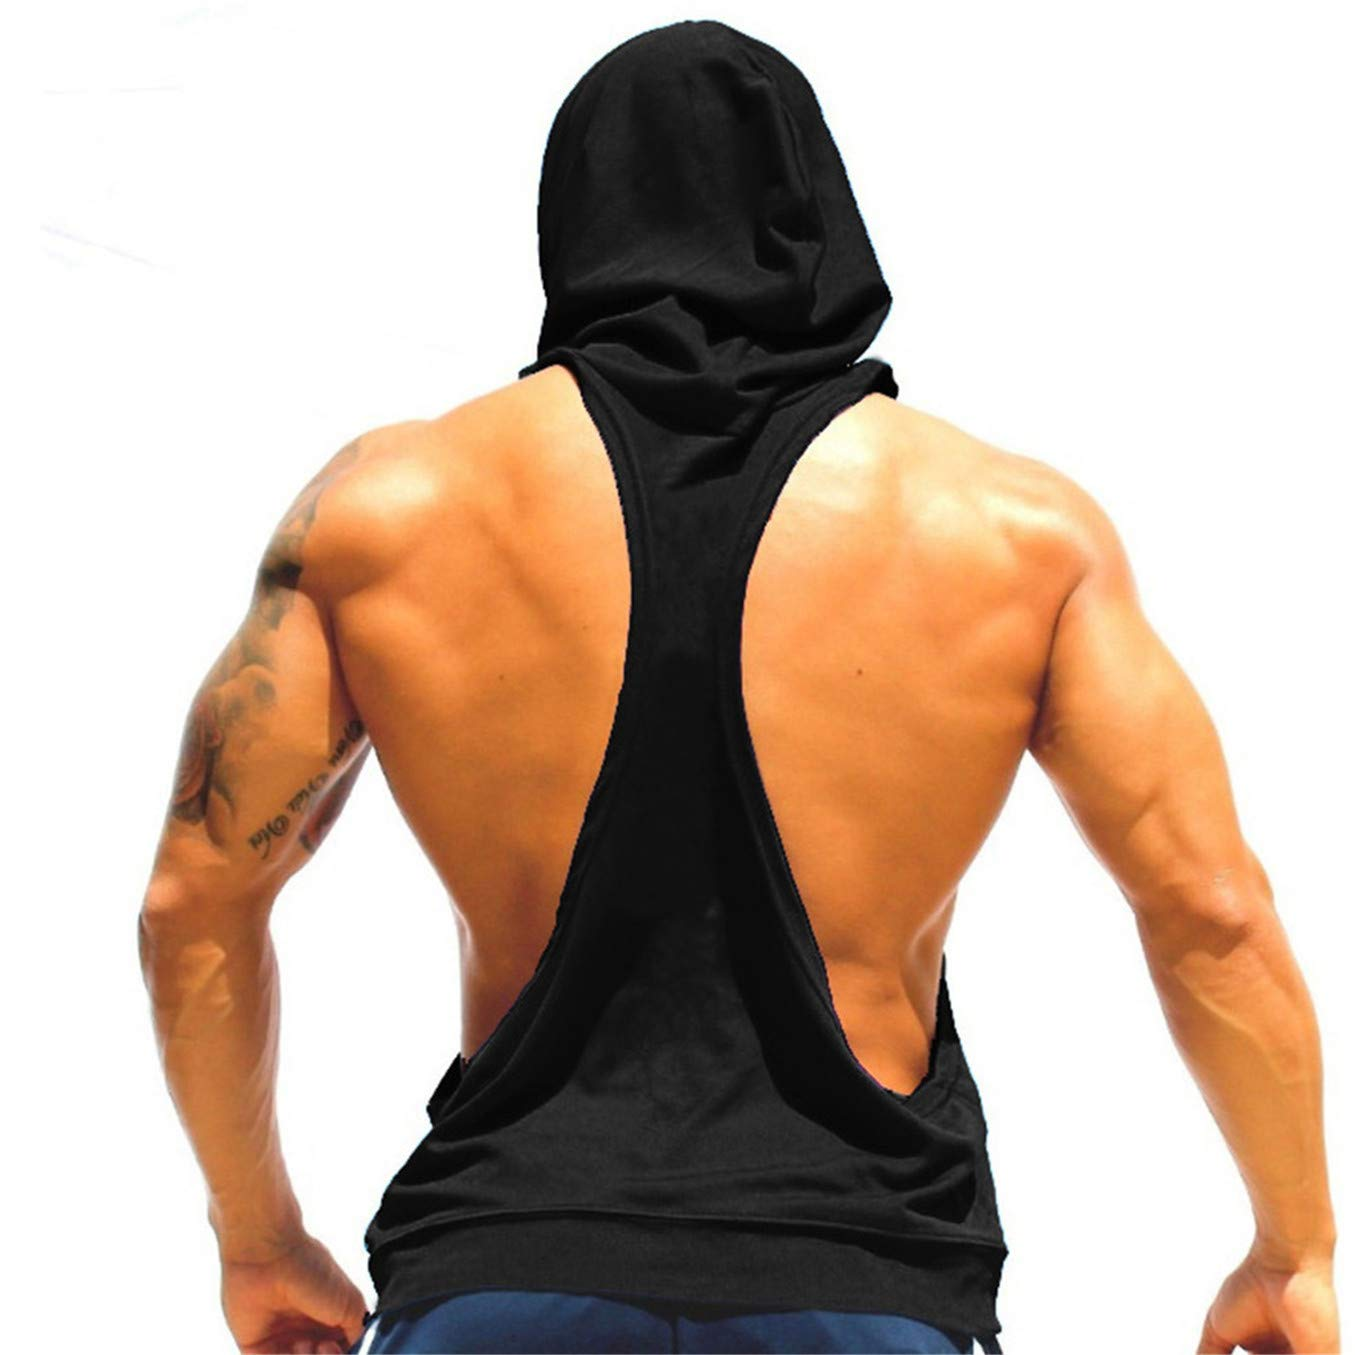 TIFENNY Men Fashion Hooded Vest Sling Running Yoga Gym Fitness Sport Shorts Breathable Sleeveless Tops Black